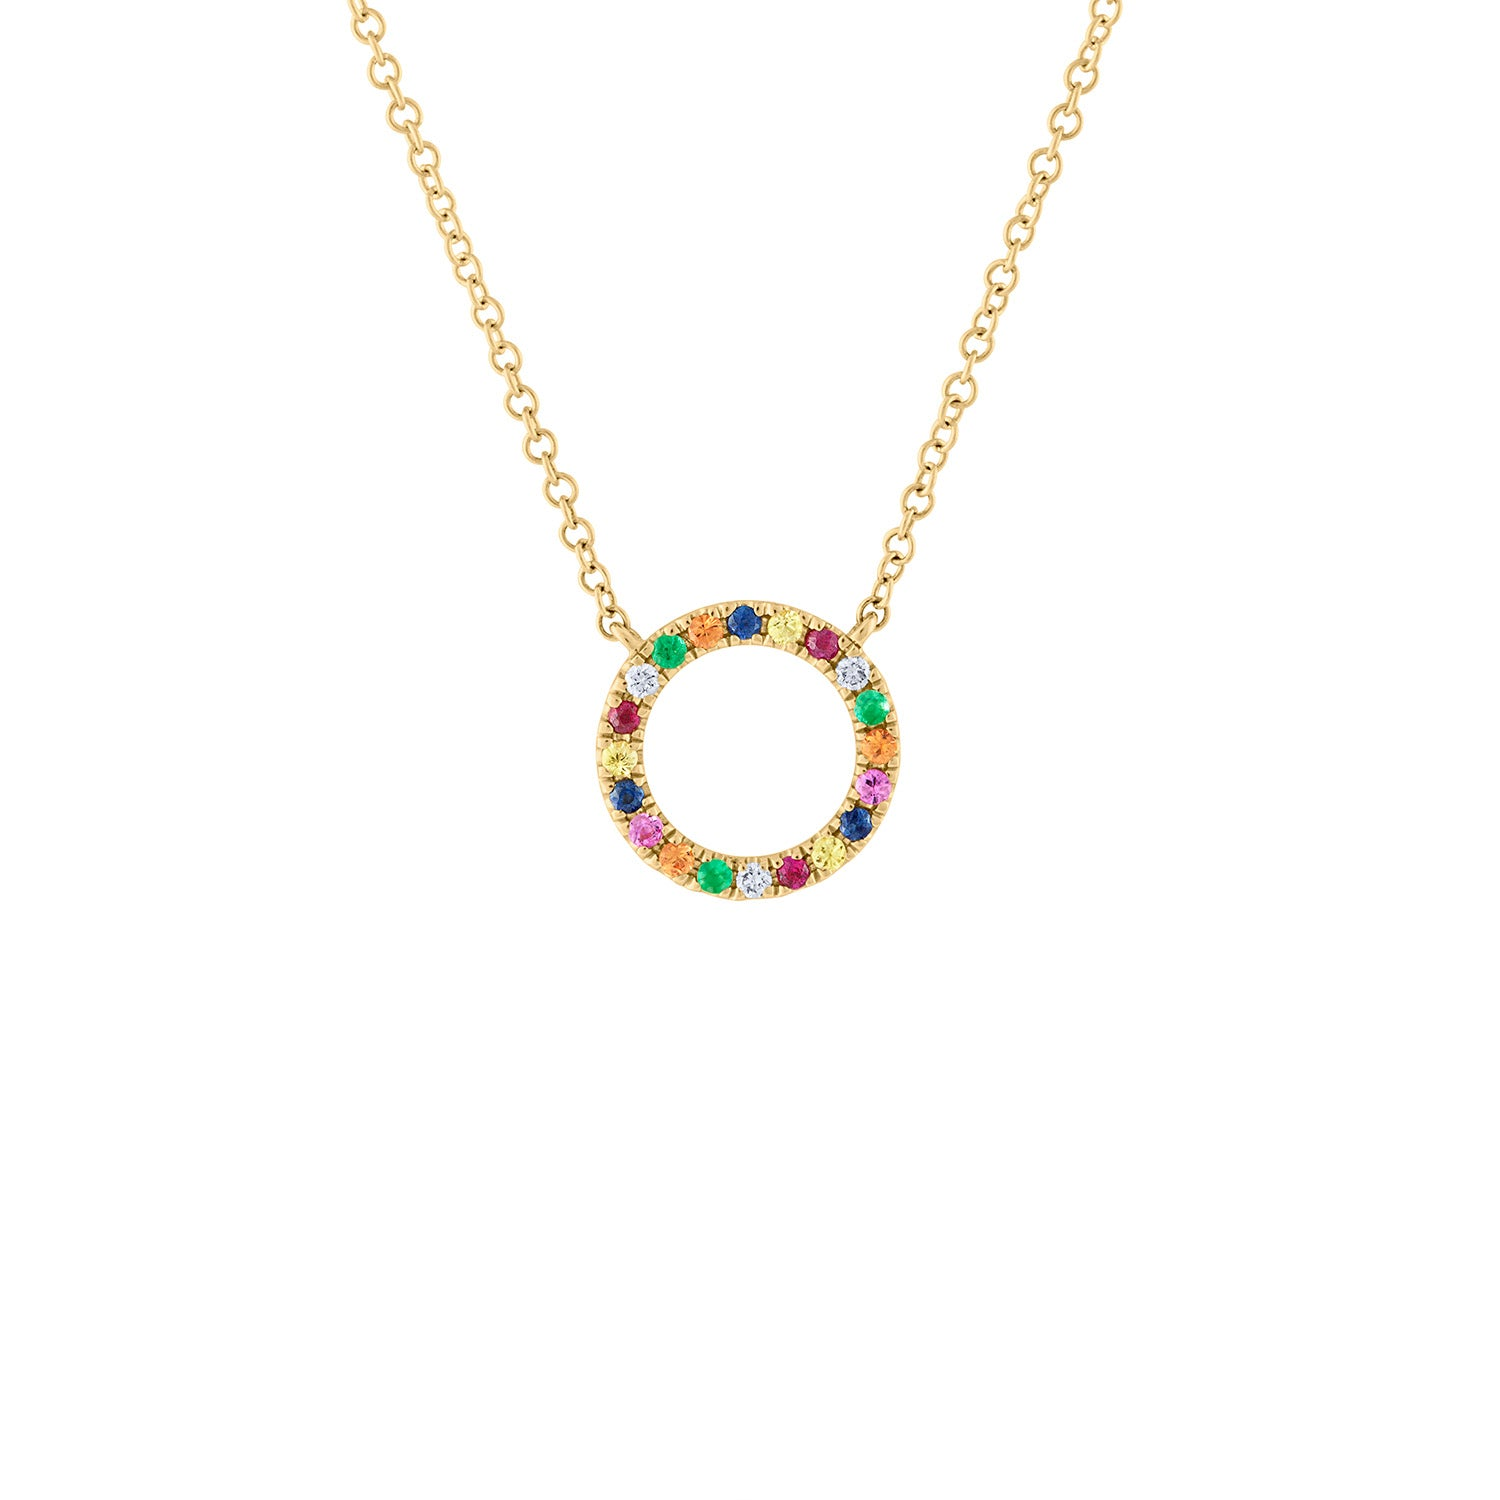 14KT YELLOW GOLD MULTI-COLOR SAPPHIRE OPEN CIRCLE NECKLACE